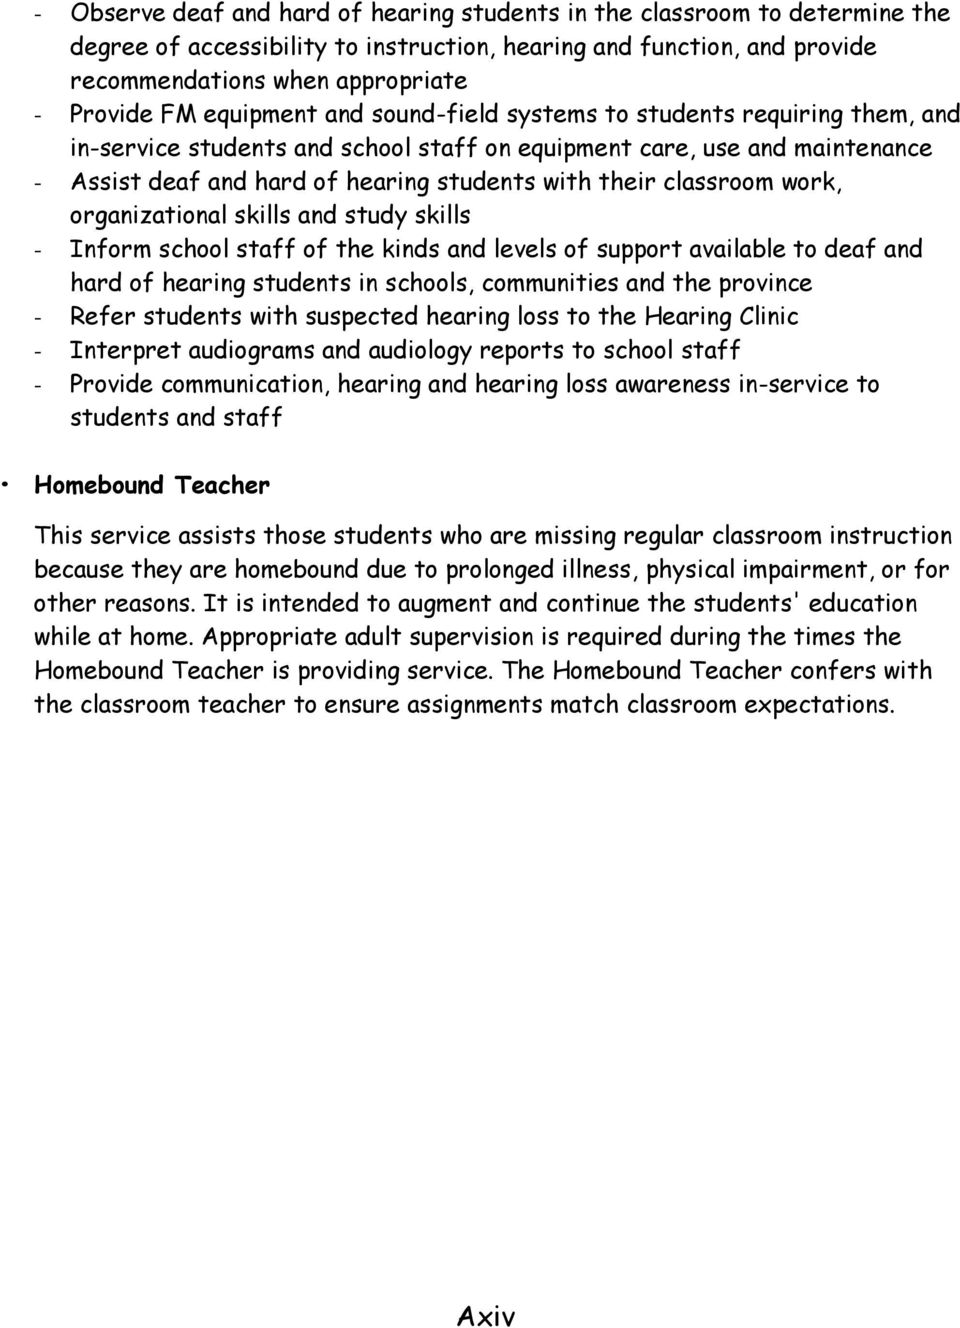 classroom work, organizational skills and study skills - Inform school staff of the kinds and levels of support available to deaf and hard of hearing students in schools, communities and the province